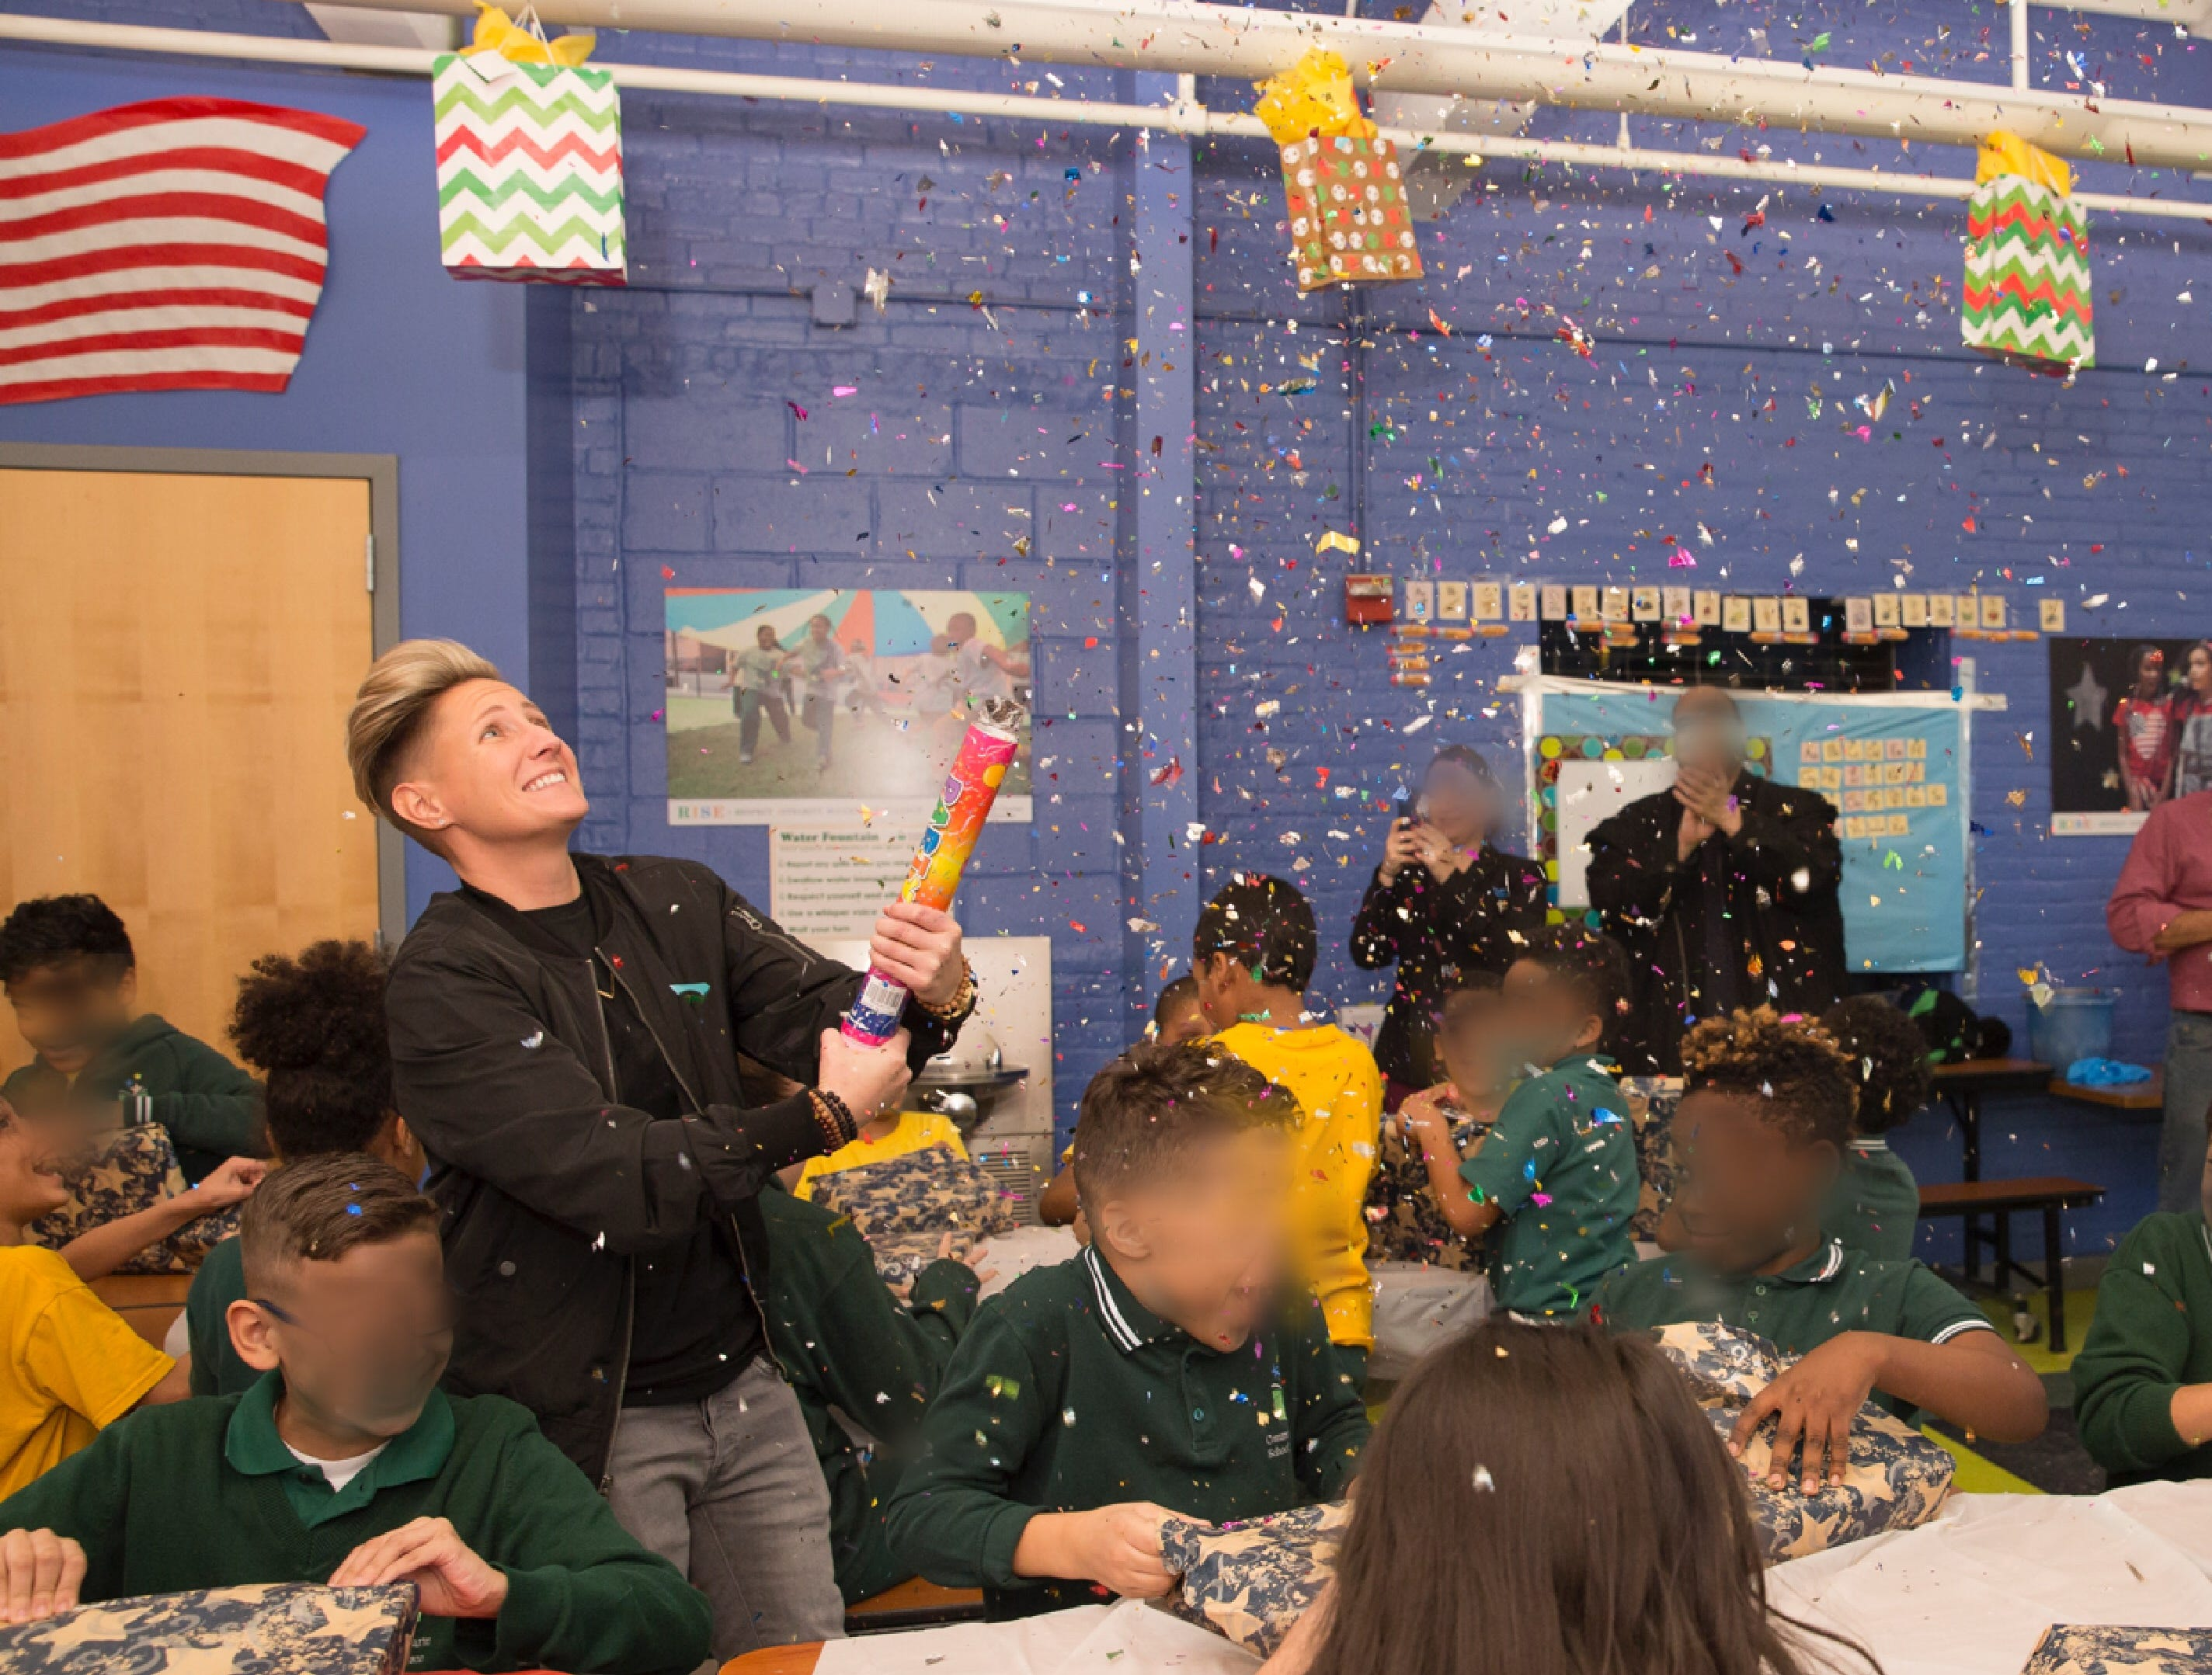 """A Santa Claus of sorts, New Brunswick teacher Jennifer Olawski is ensuring that every single of of her more than 450 students will receive a gift this holiday season. Continuing a program she began in her former school (pictured here), Olawski, a physical education and health teacher at Livingston Elementary School, created a GoFundMe campaign to raise funds for gifts for the children. This year's effort saw more than $10,000 in donations and the help of many school """"elves."""""""